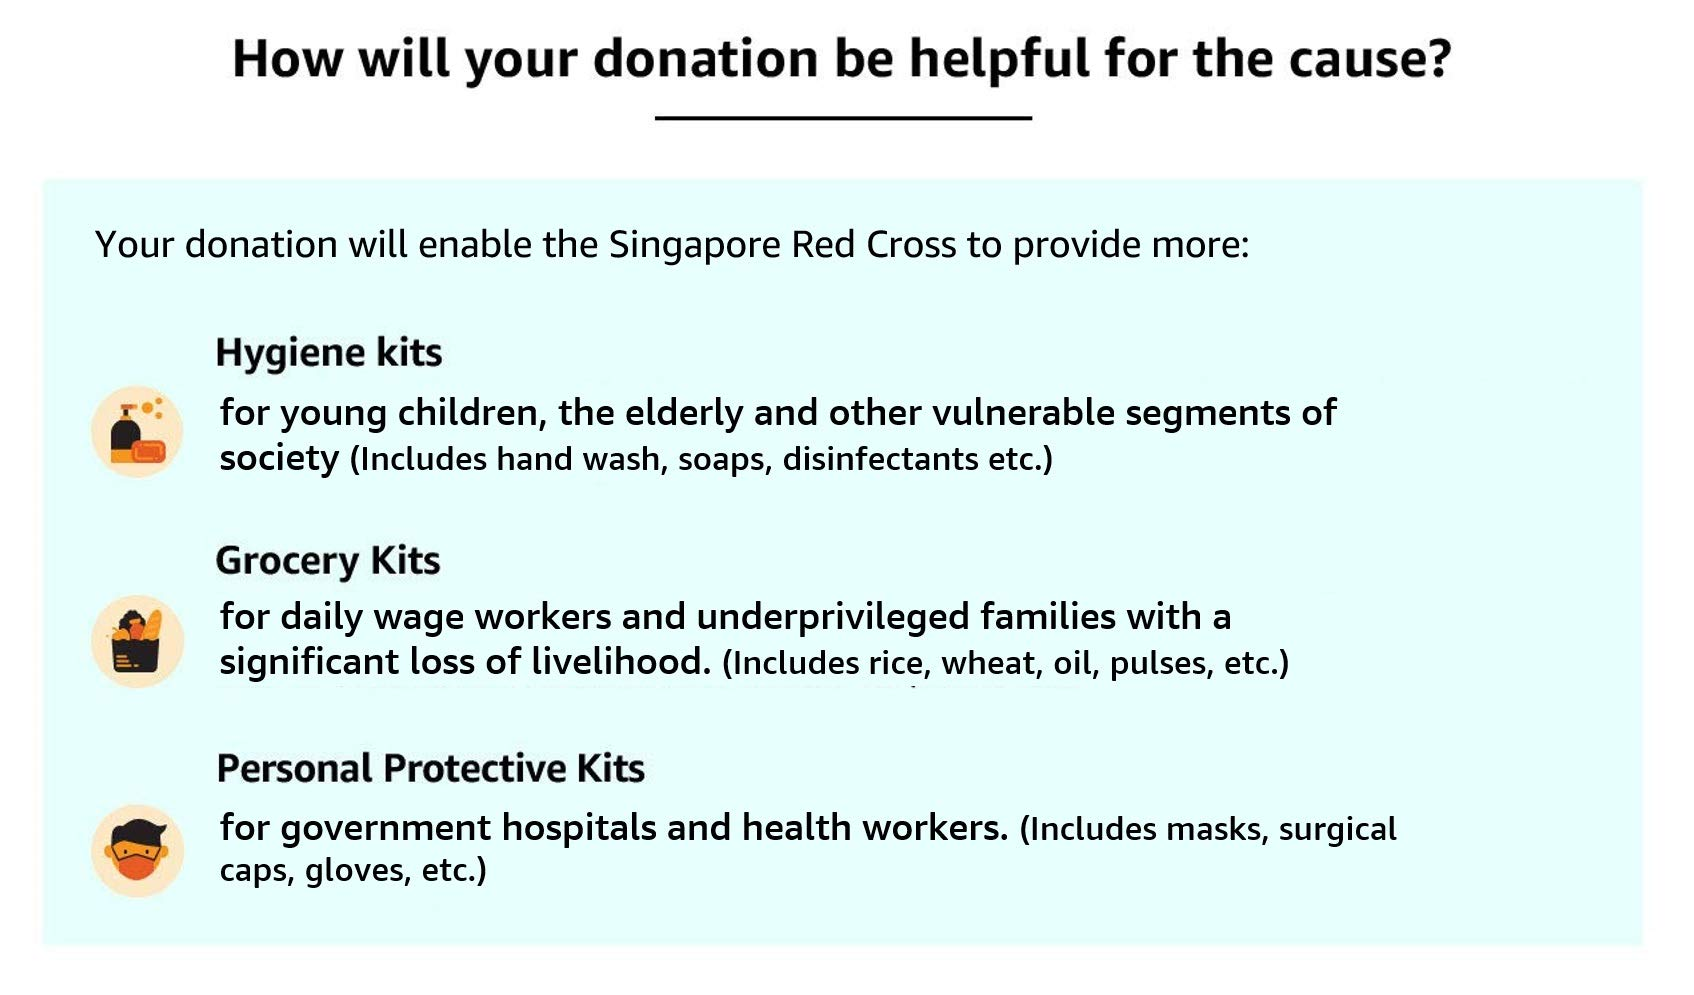 How will your donation be helpful for a cause?